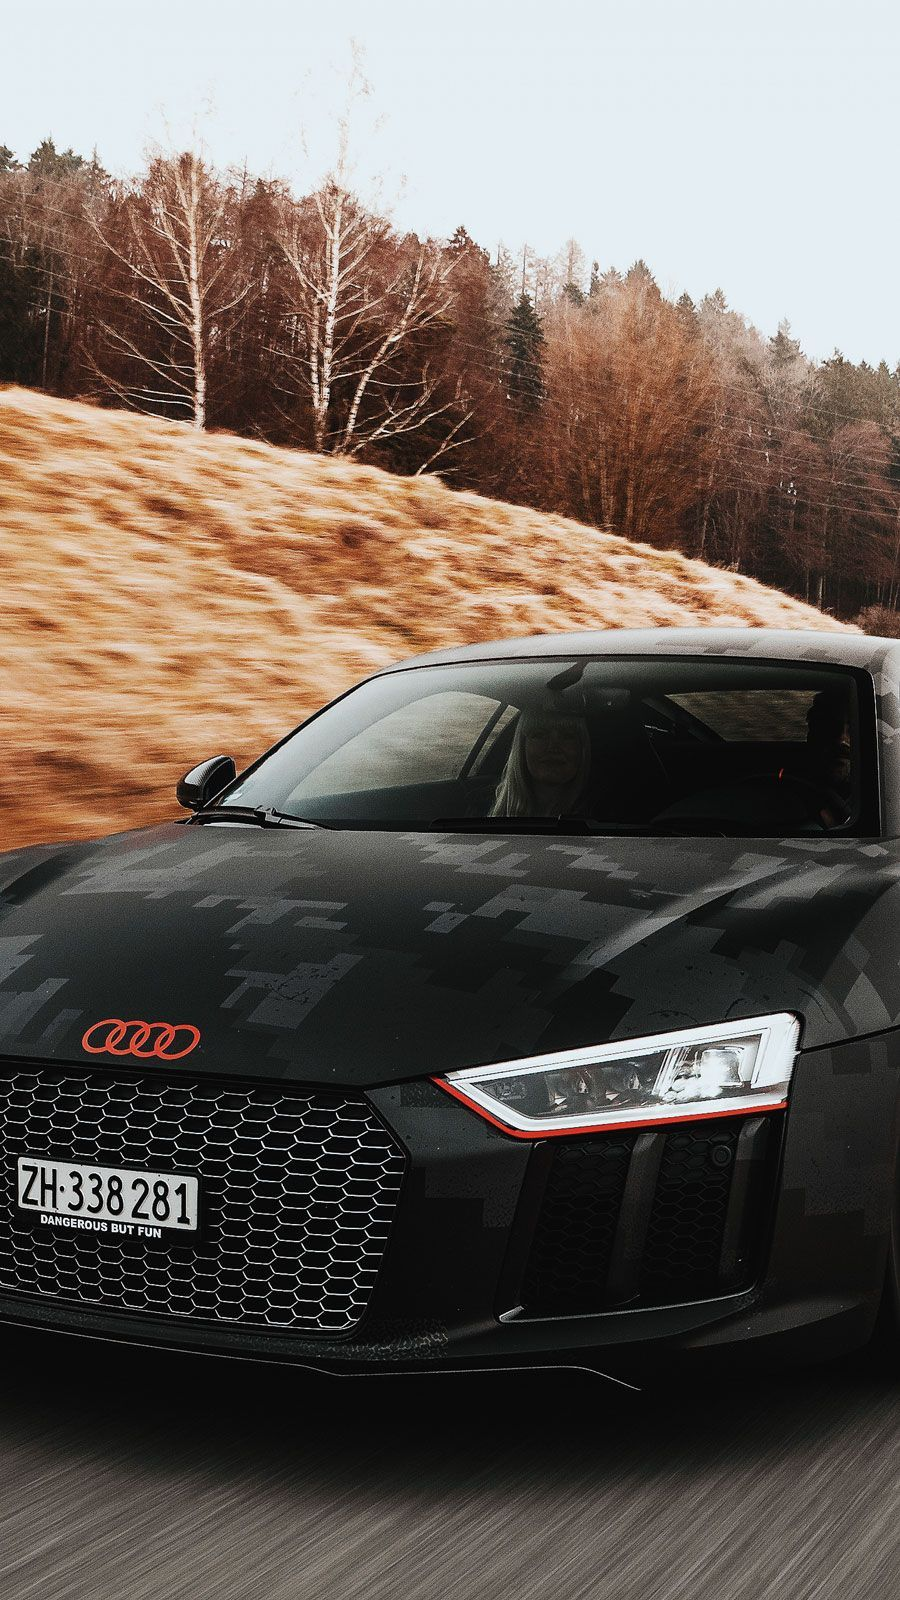 Car Wallpaper 37 Car iphone wallpaper, Car wallpapers, Audi